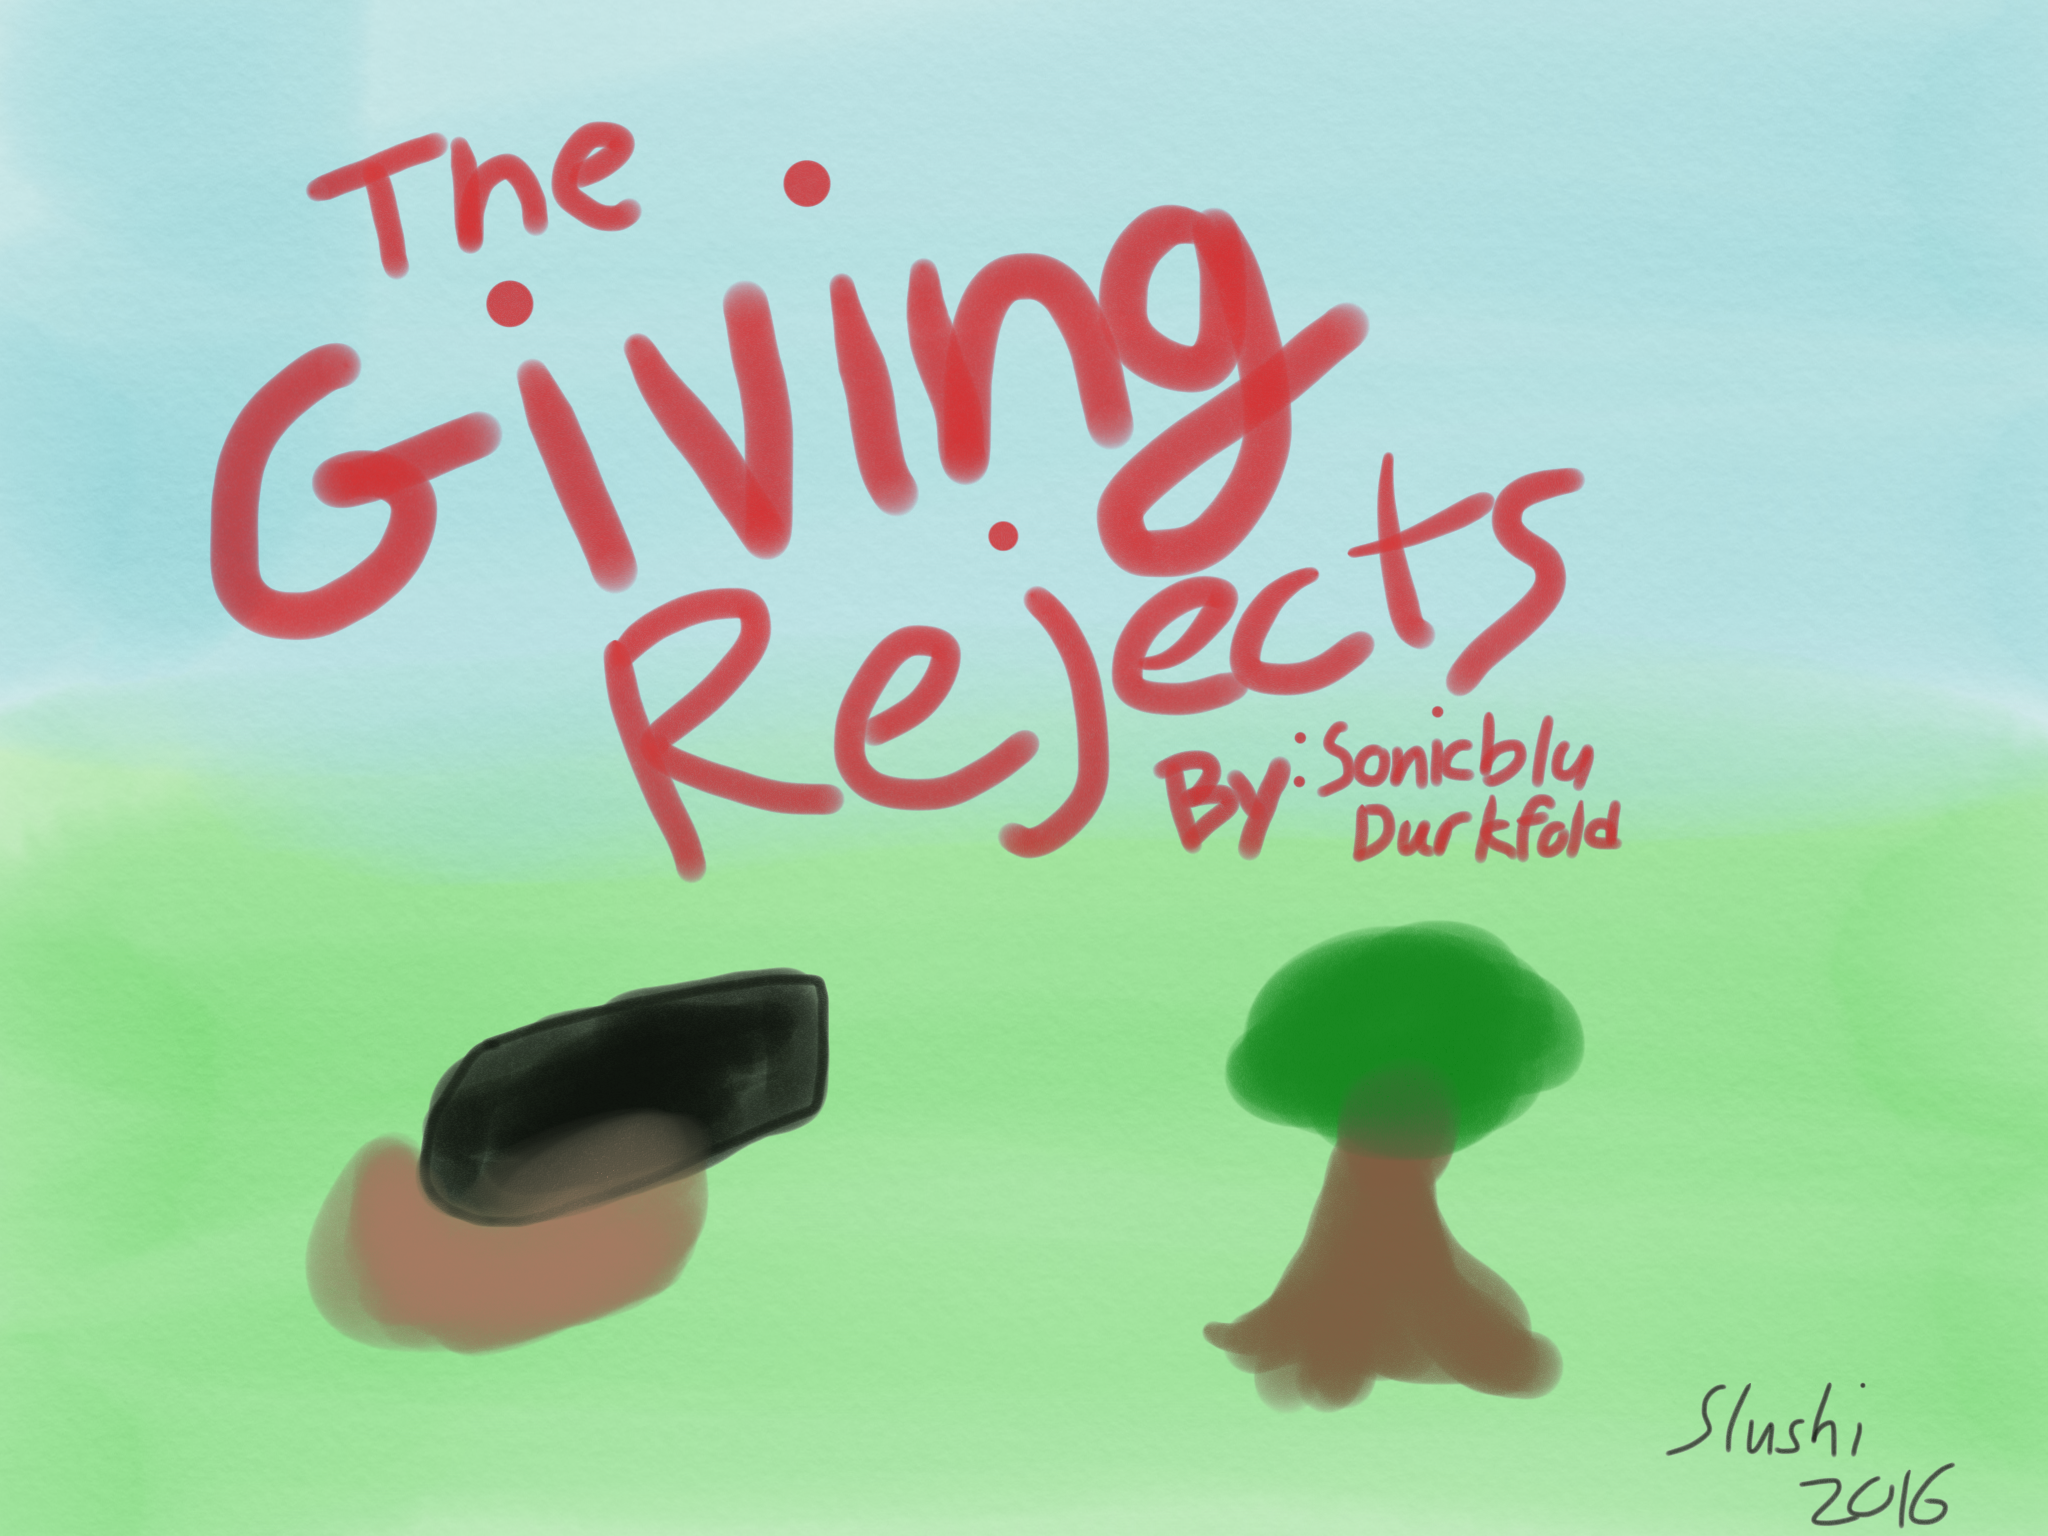 Giving Rejects